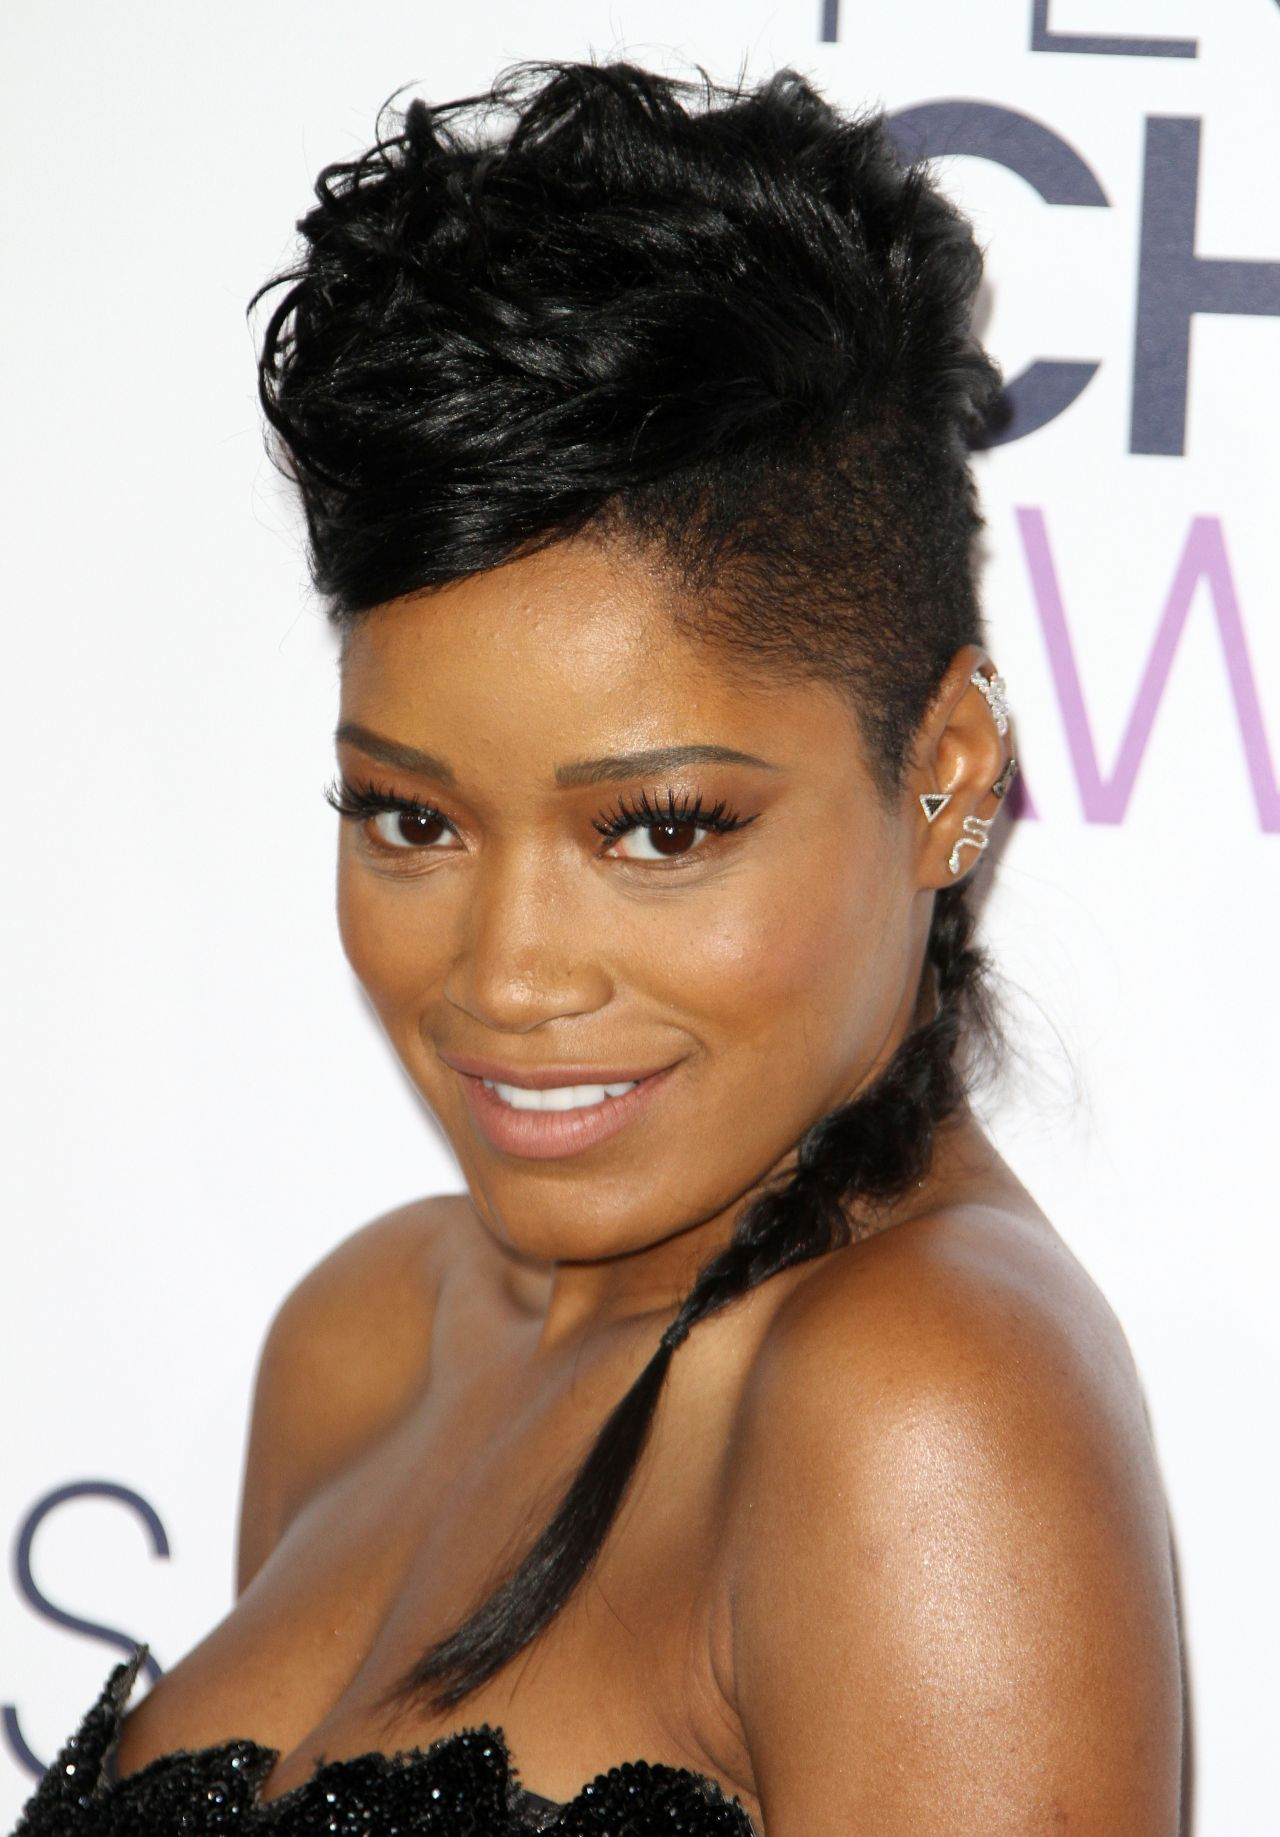 keke-palmer-2016-people-s-choice-awards-in-microsoft-theater-in-los-angeles-5